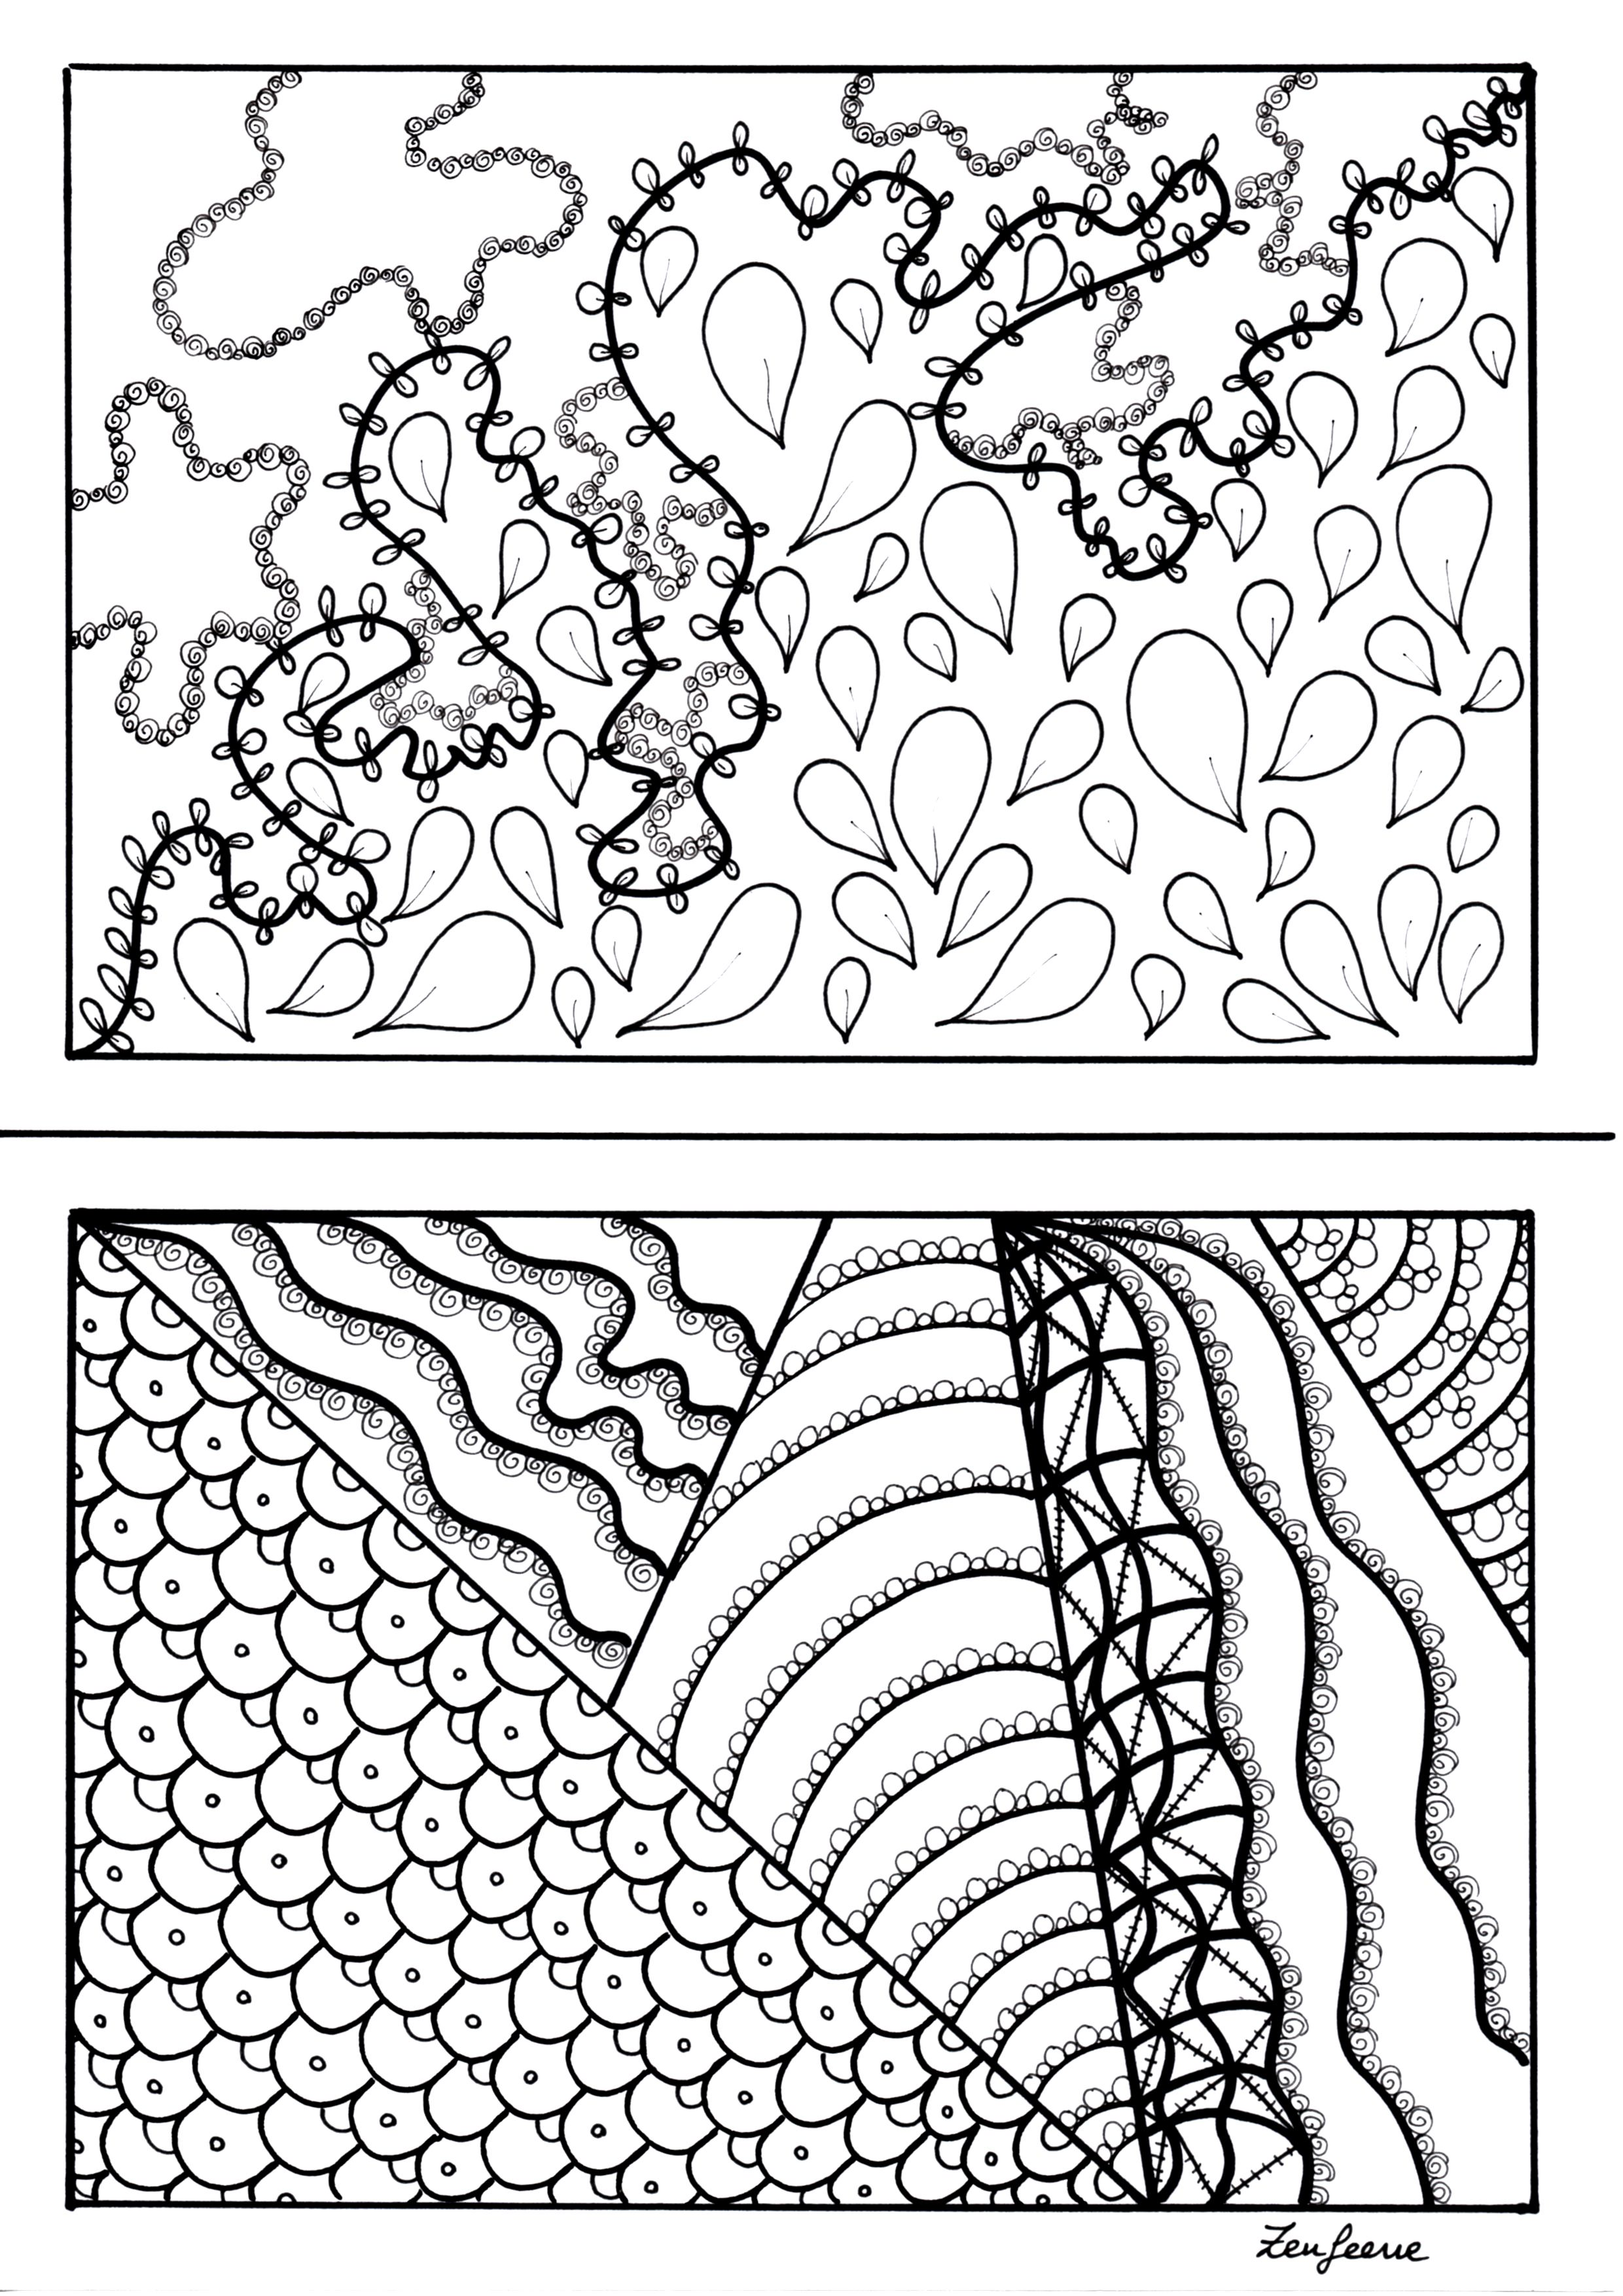 Zentangle coloring page in two parts